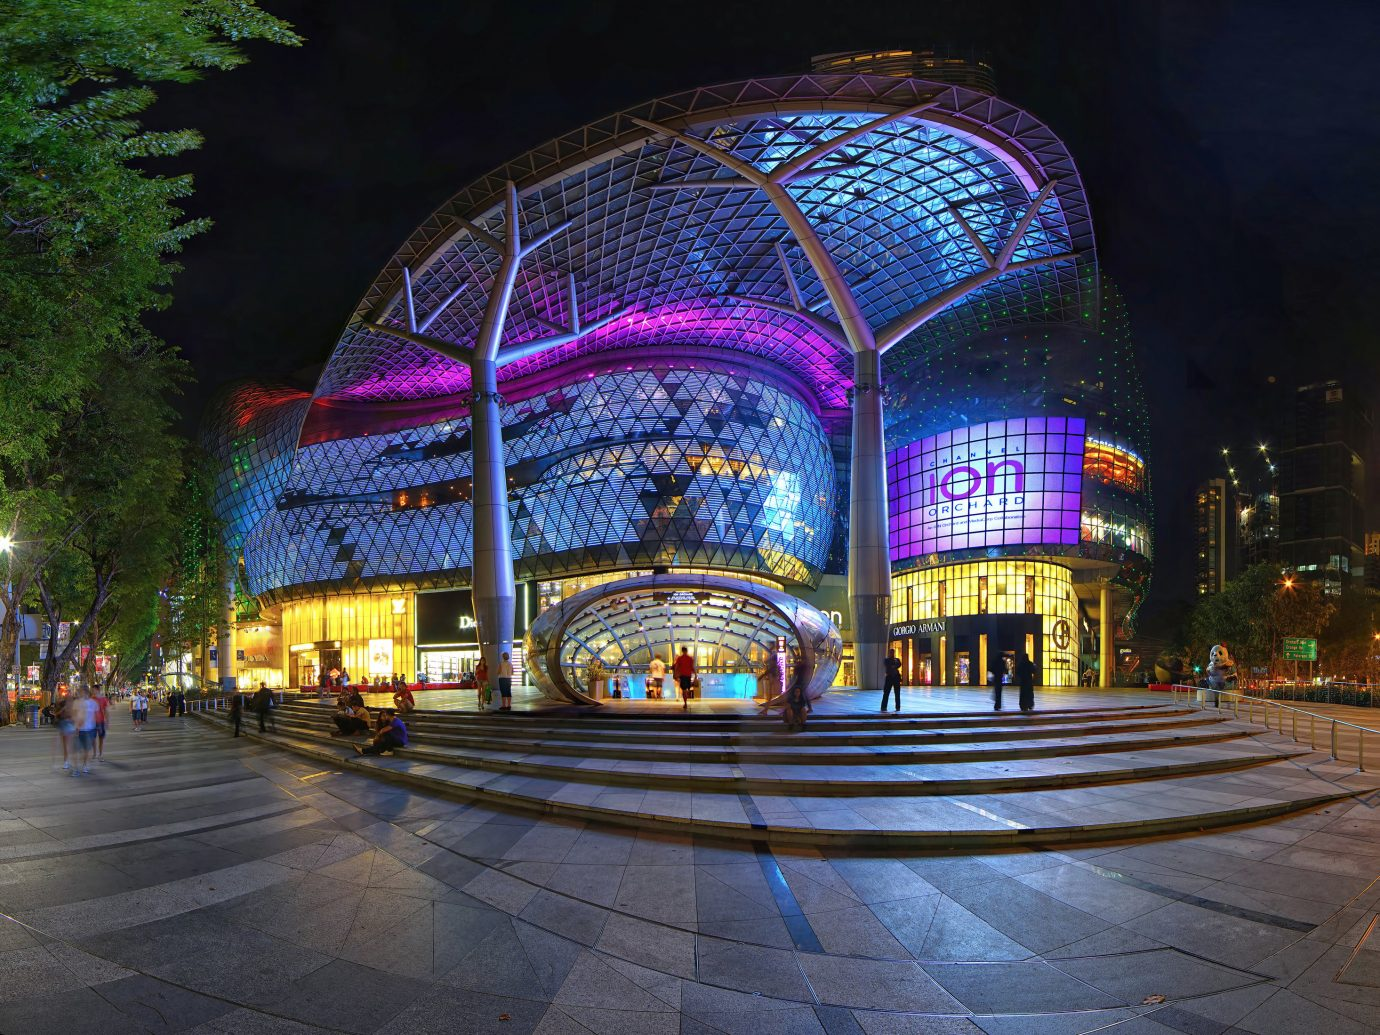 Offbeat Singapore Trip Ideas outdoor road metropolitan area night street landmark City urban area light human settlement cityscape Downtown evening lighting way colorful bright colored